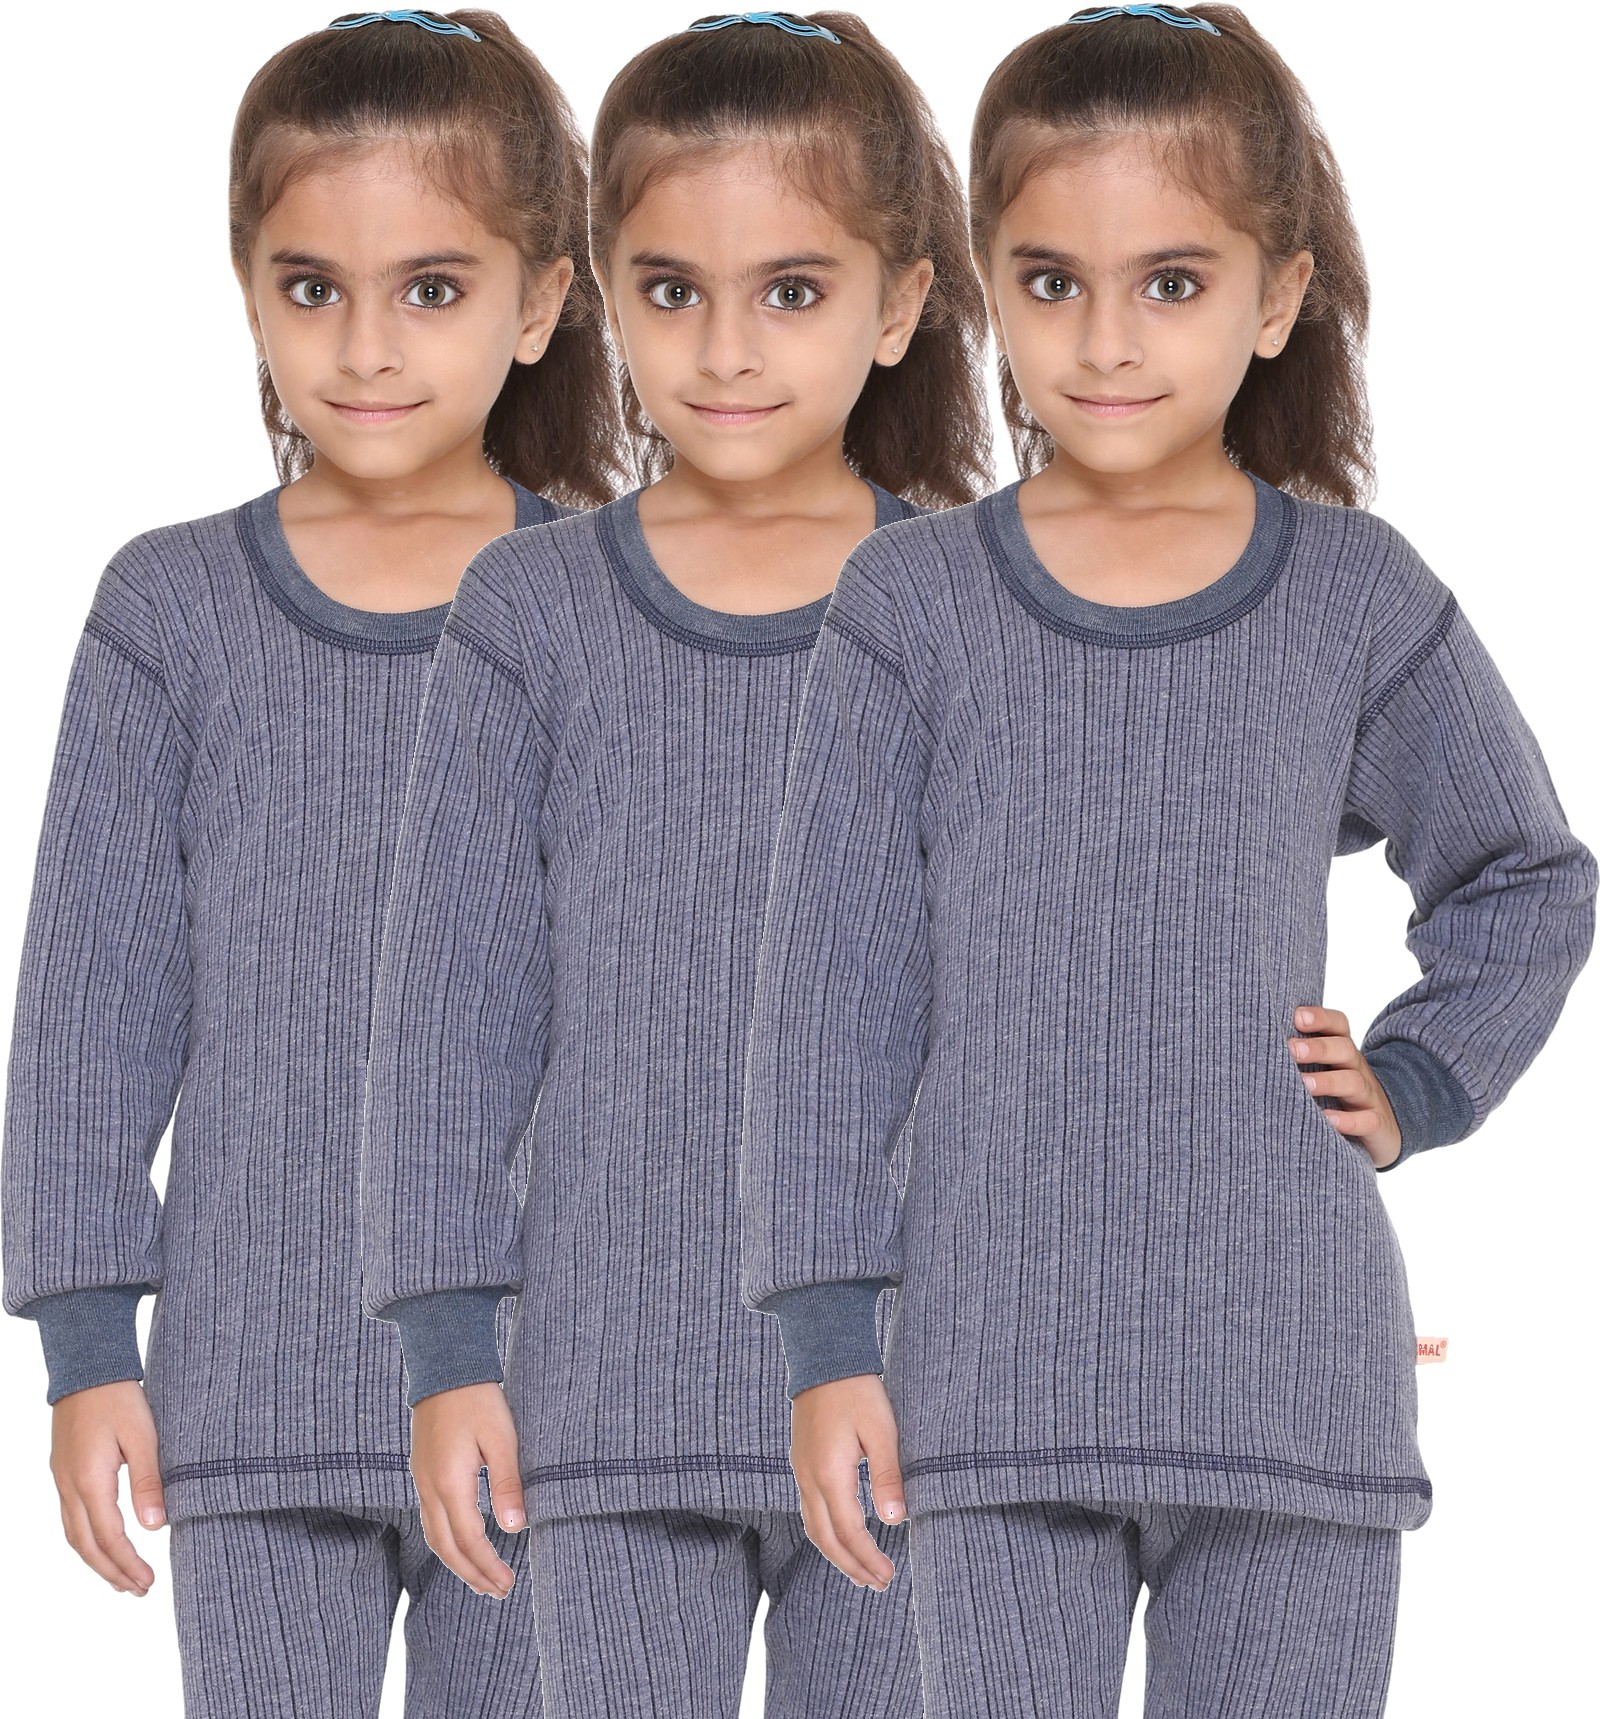 Deals | Kids Thermals Tinny Tots, Bodysense...